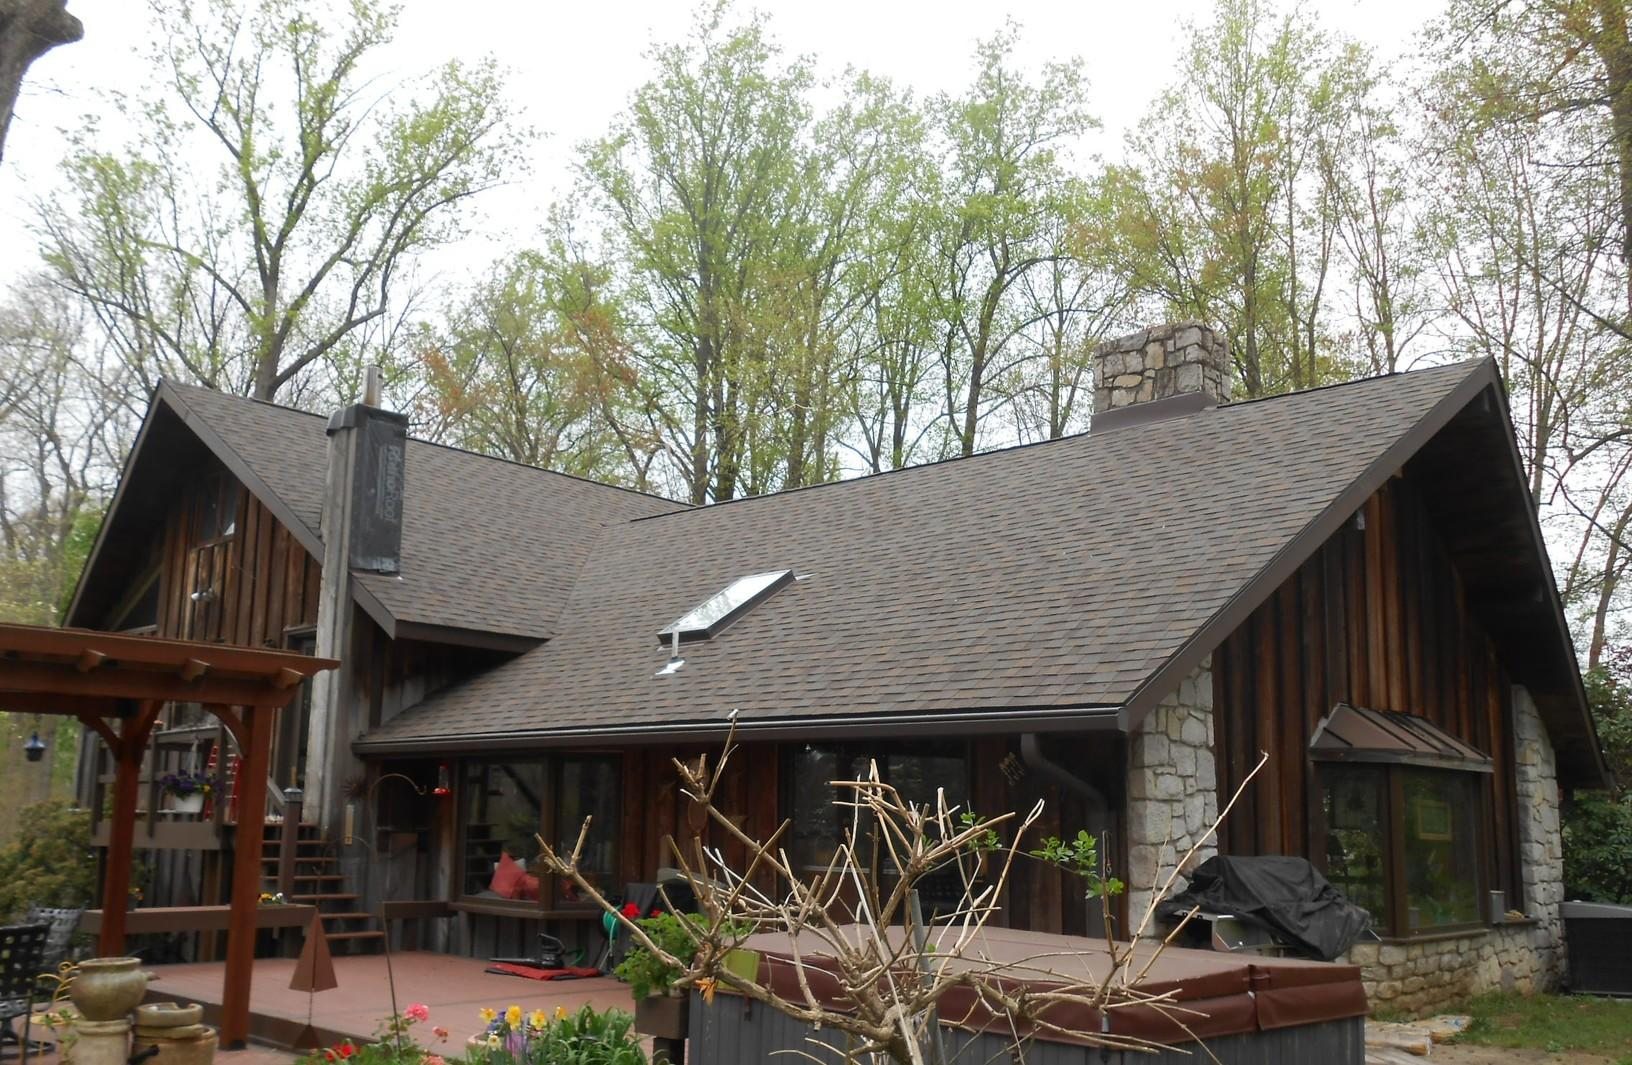 Owens Corning Driftwood Shingle Roof Install in Downingtown, PA